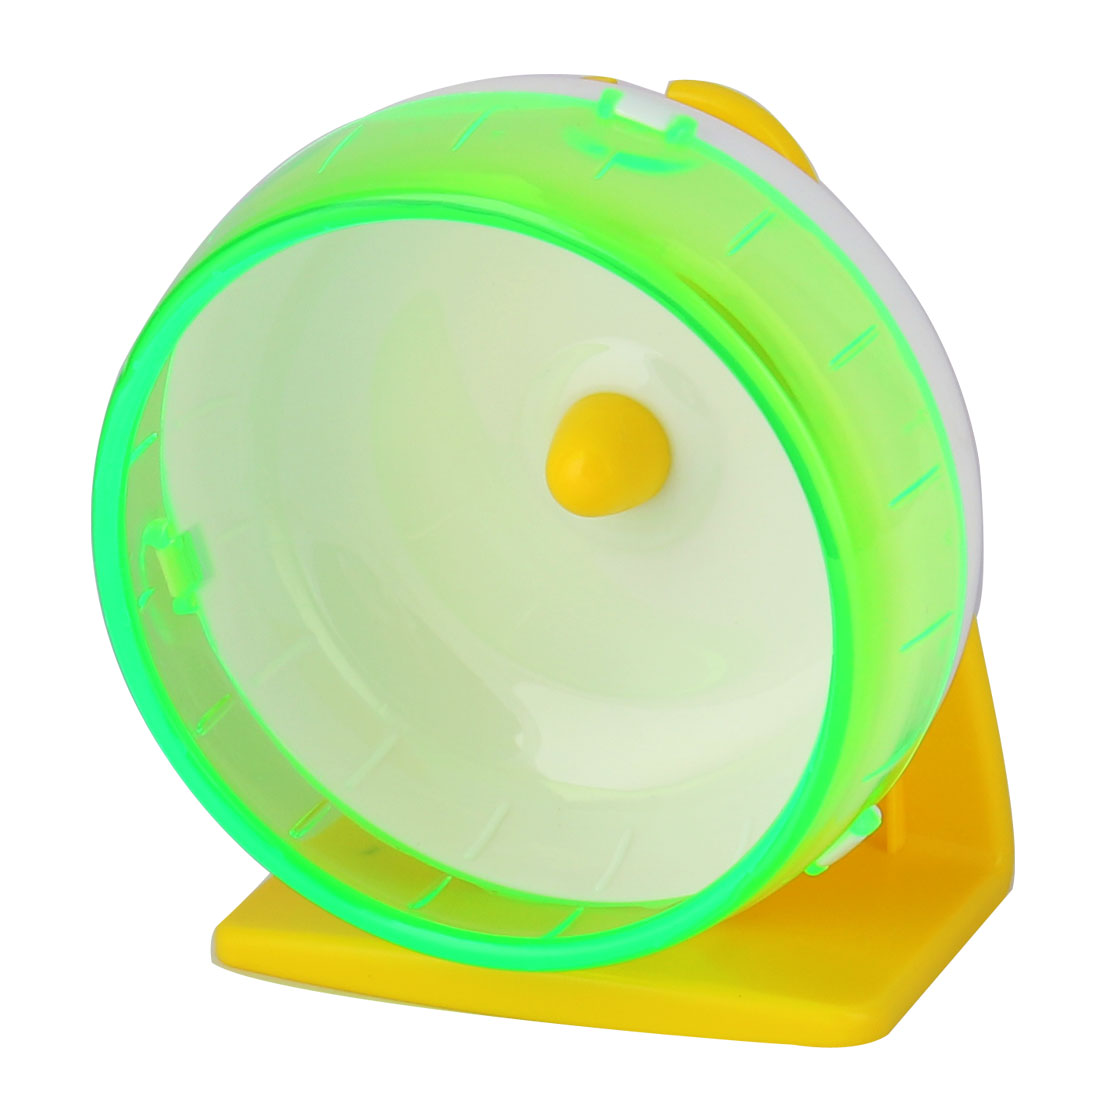 Pet Hamster Gerbil Plastic Play Stand Wheel Toy Holder Light Green w Suction Cup